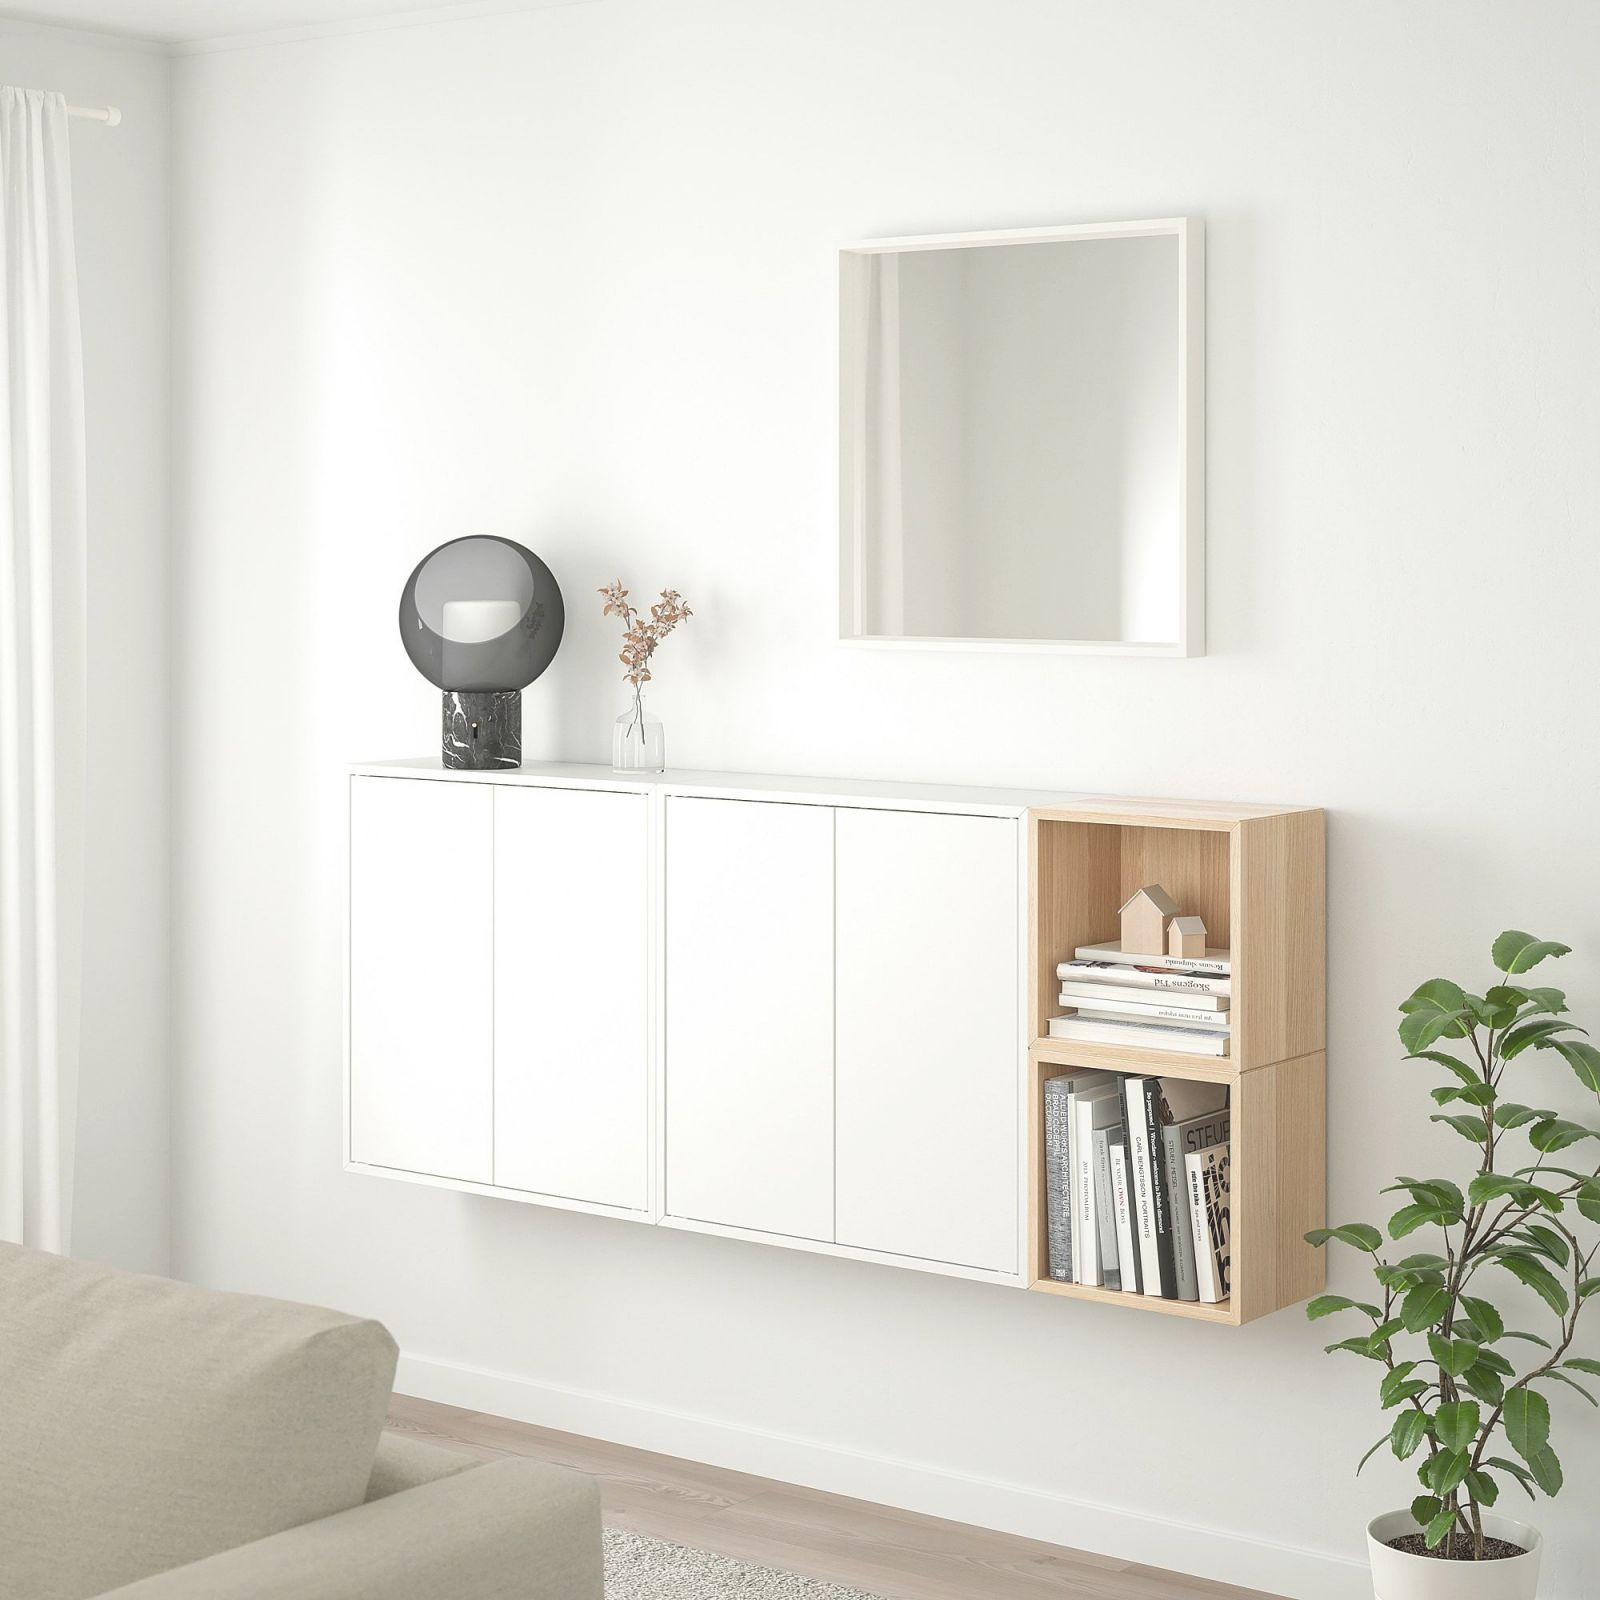 Ikea – Eket Wall-Mounted Cabinet Combination White, White within Best of Ikea Wall Cabinets Living Room